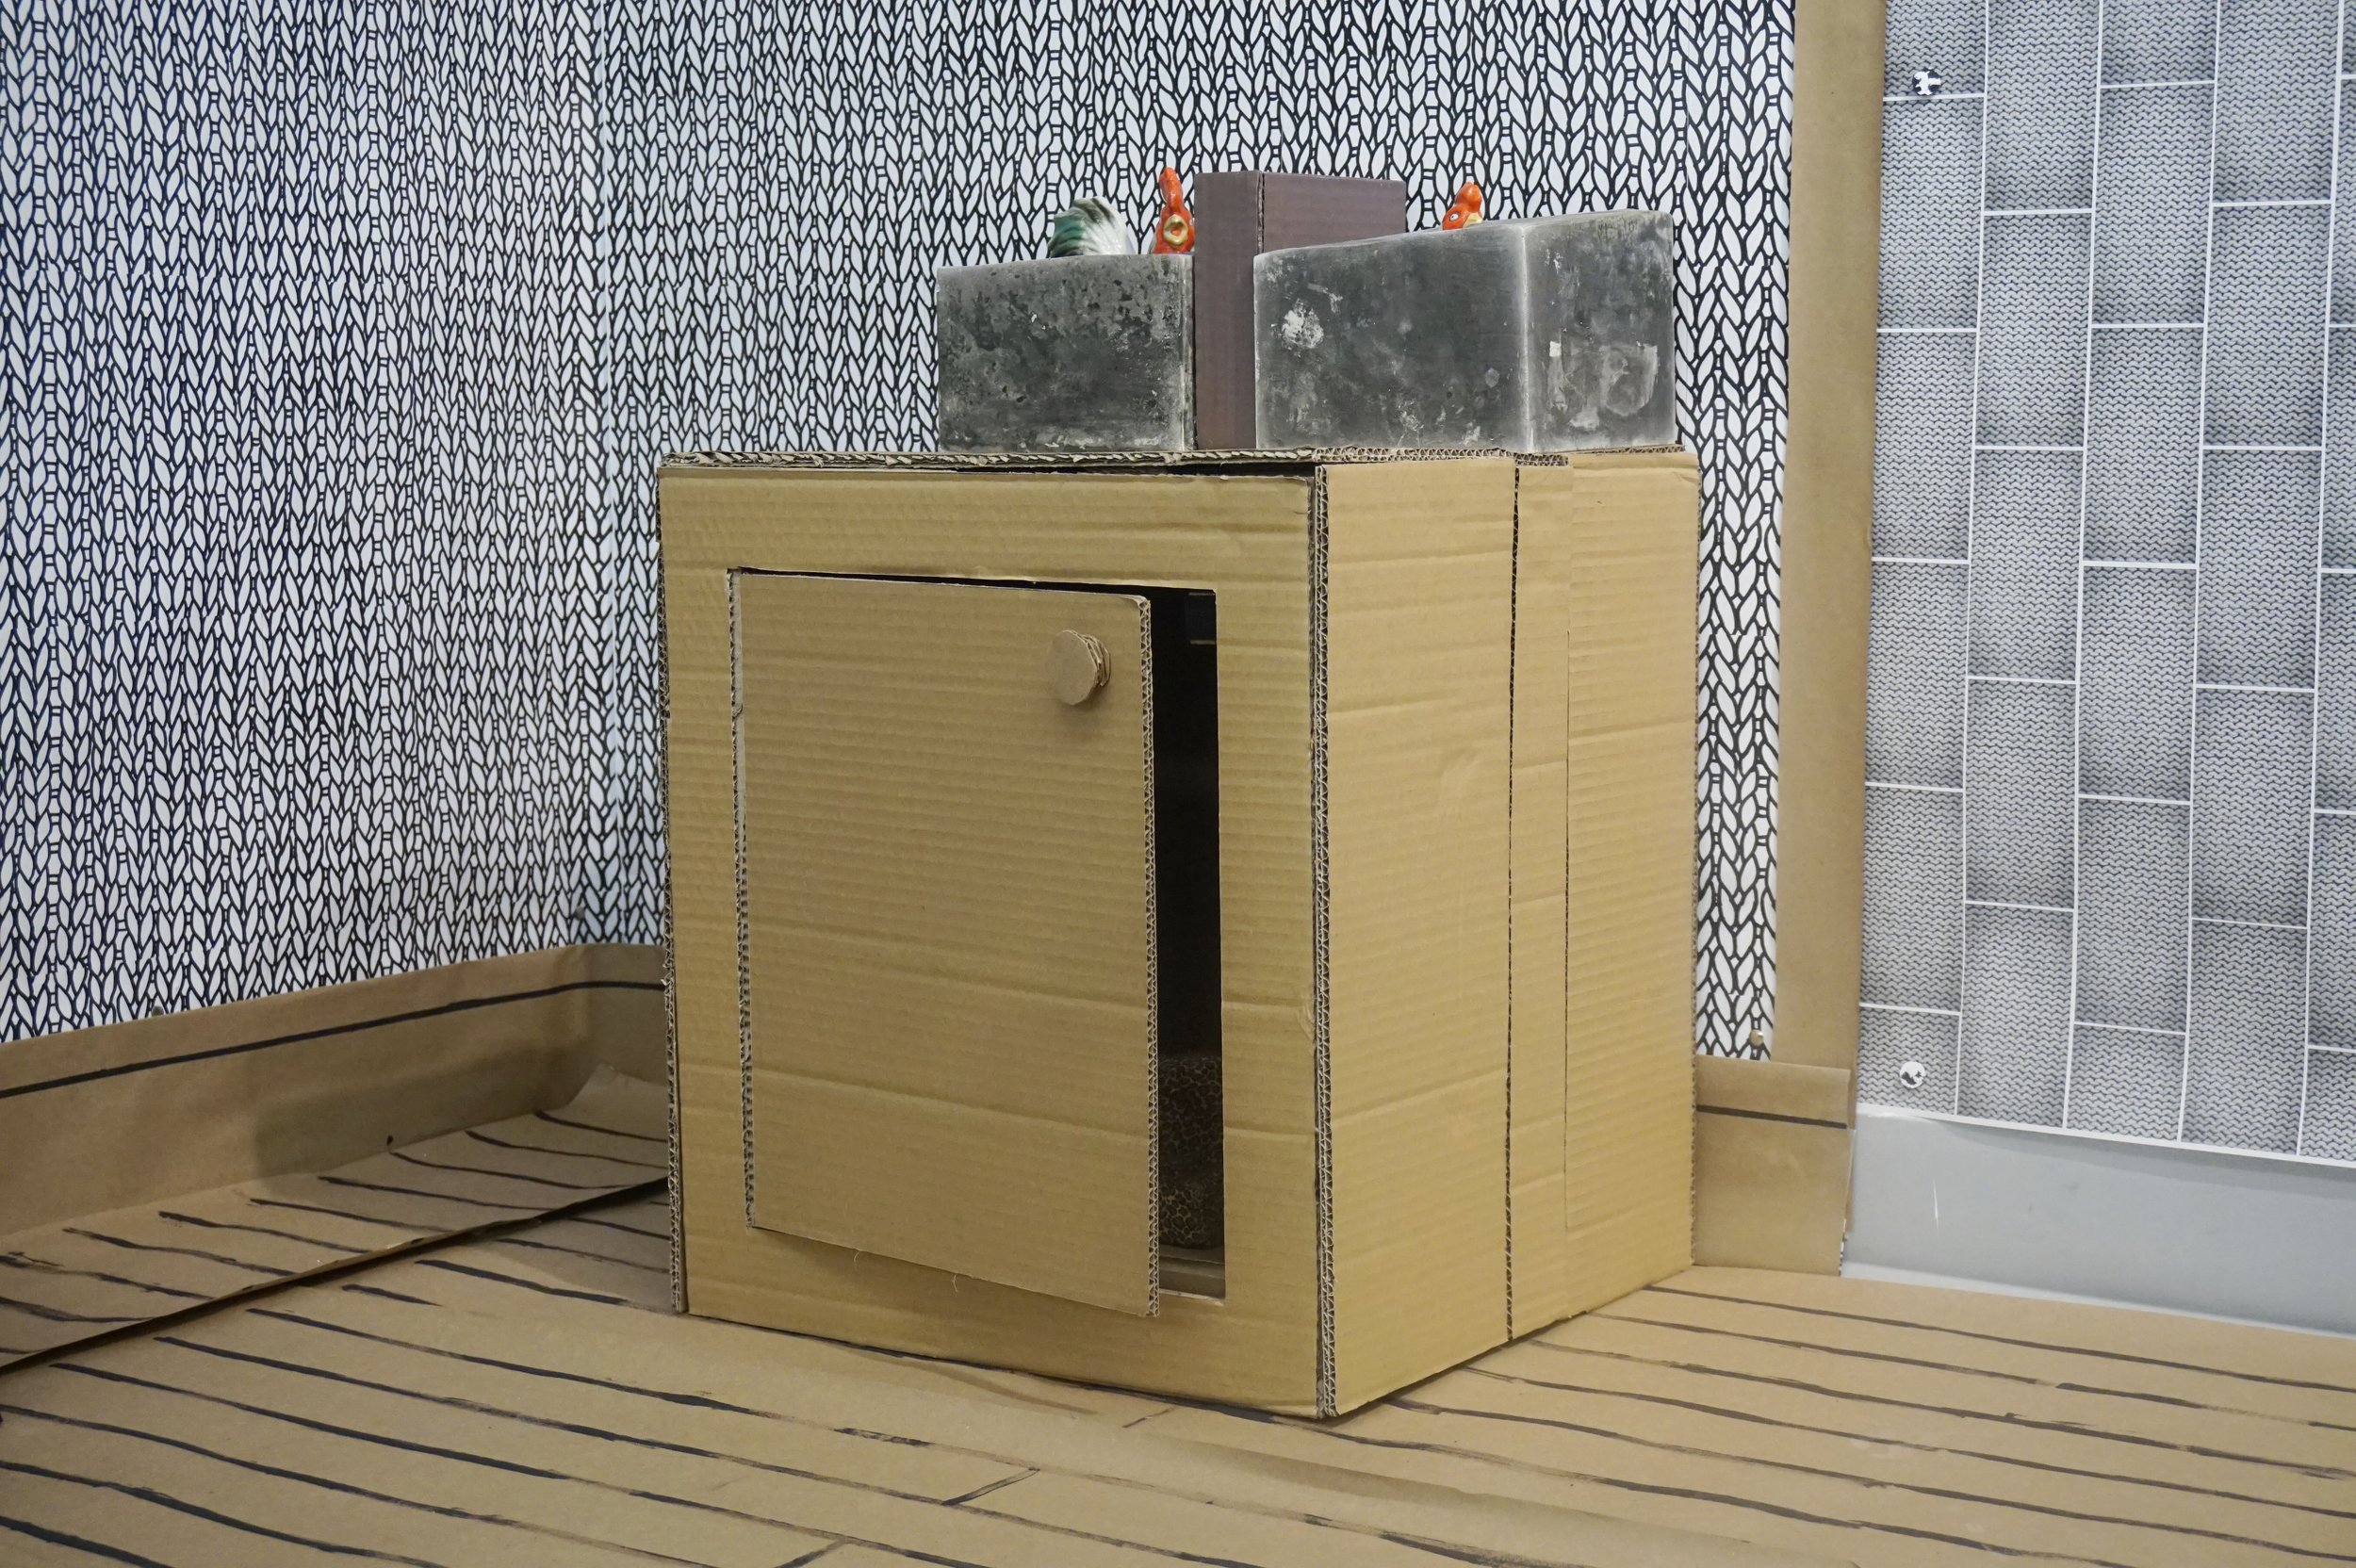 Small Cabinet with Chickens